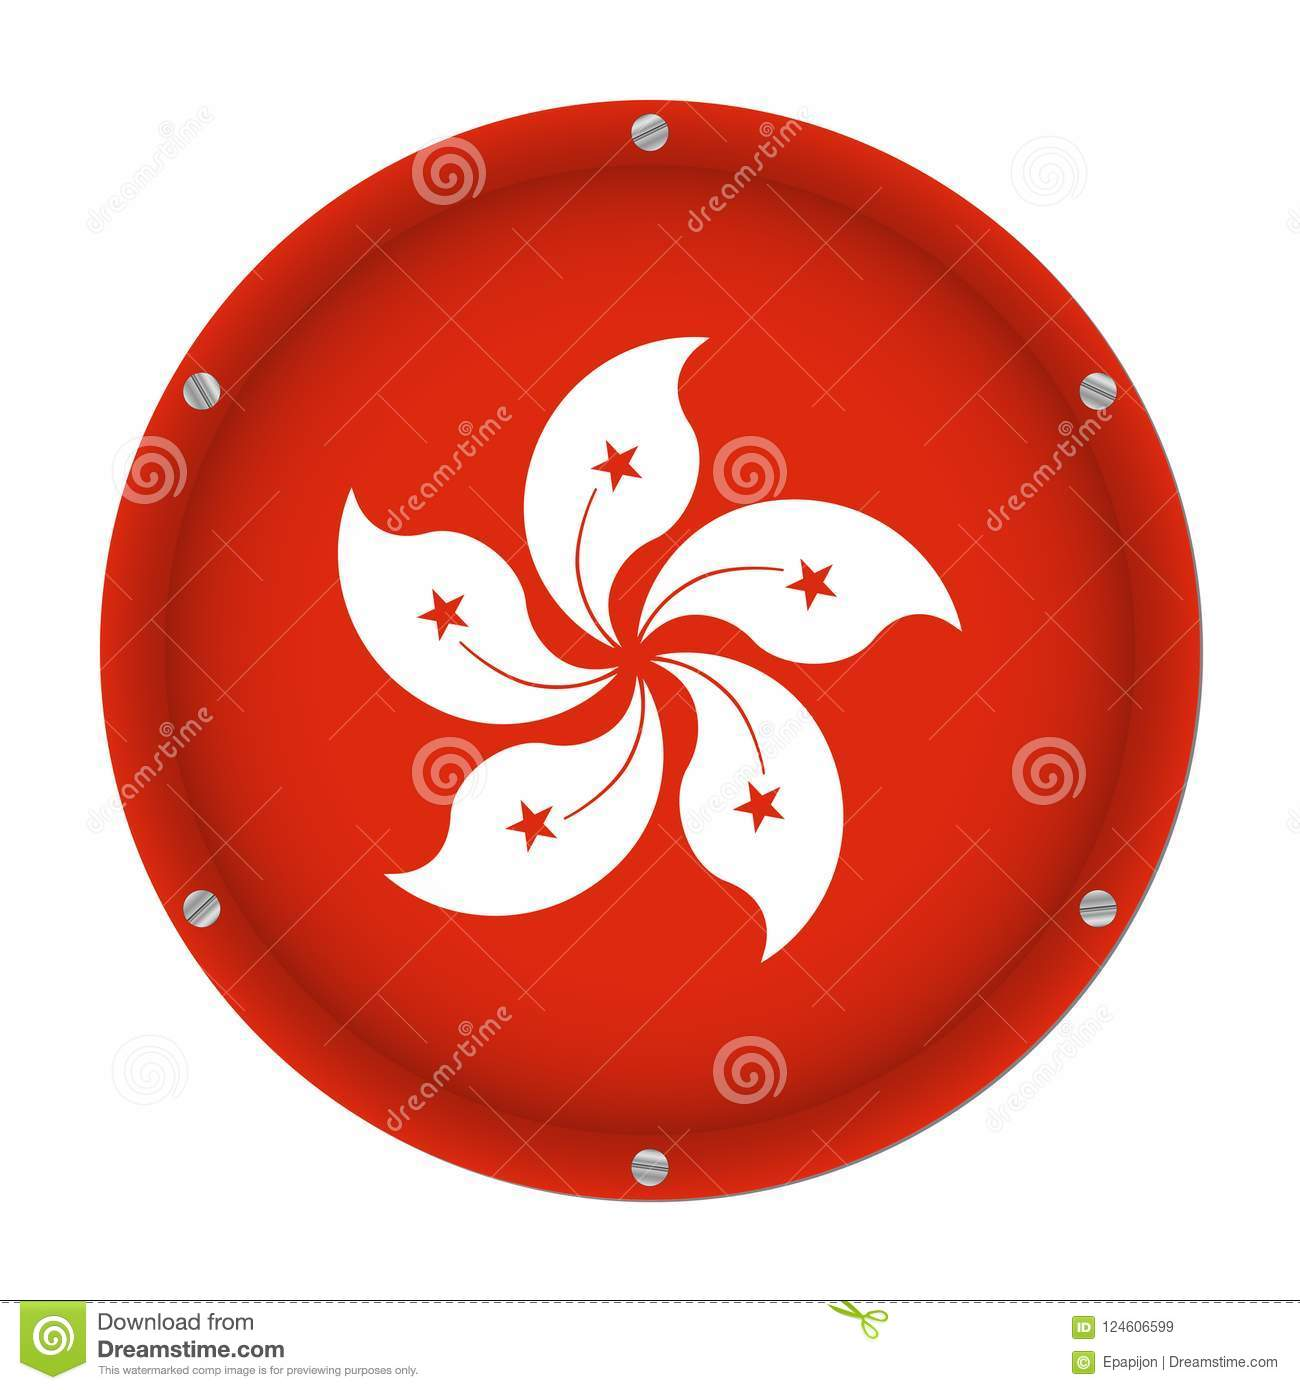 Round metallic flag of hong kong with screws stock vector round metallic flag of hong kong with six screws in front of a white background mightylinksfo